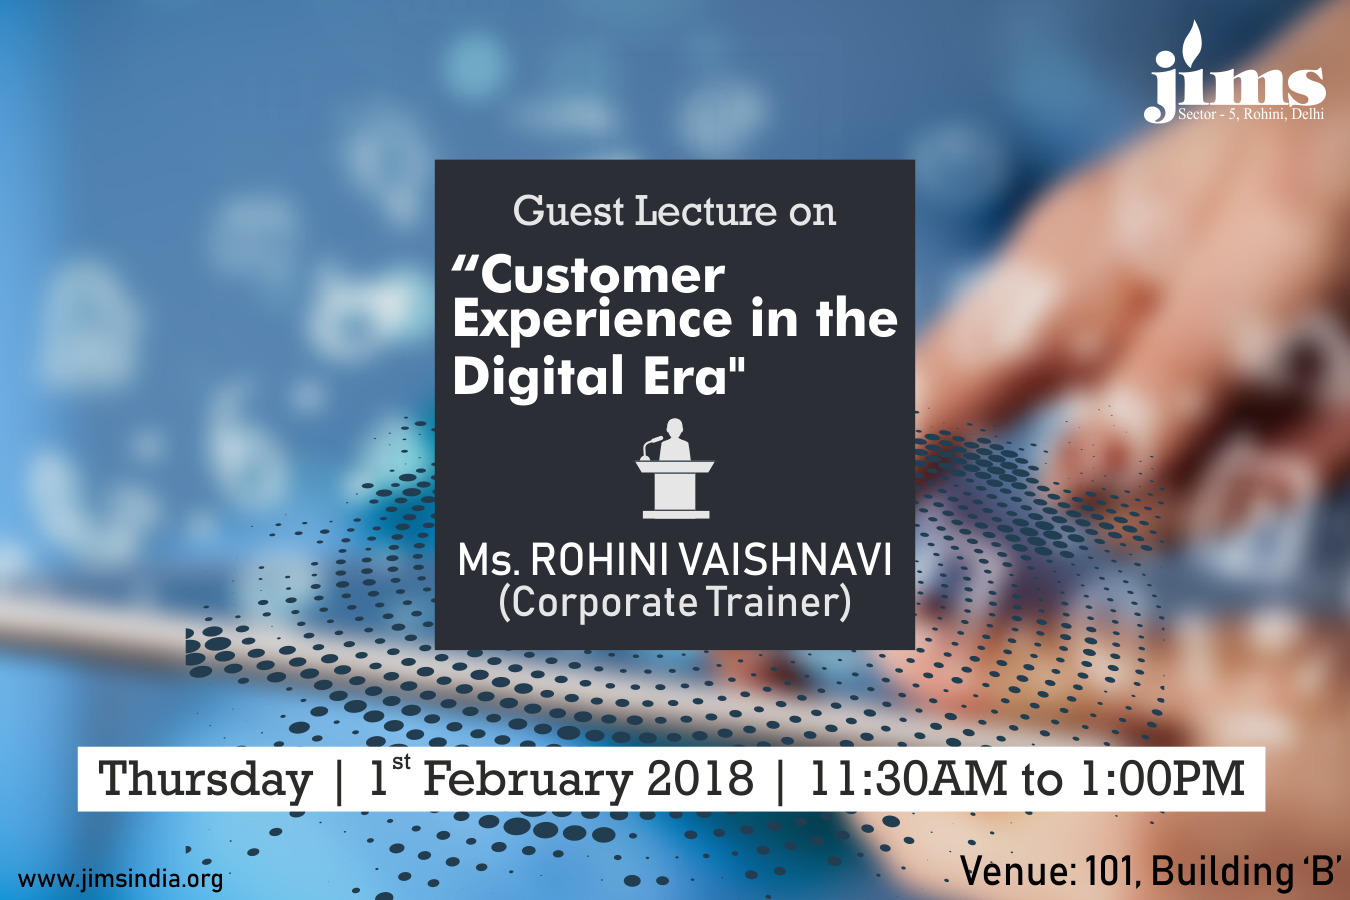 JIMS is organizing a Guest Lecture on Customer experience in the digital era